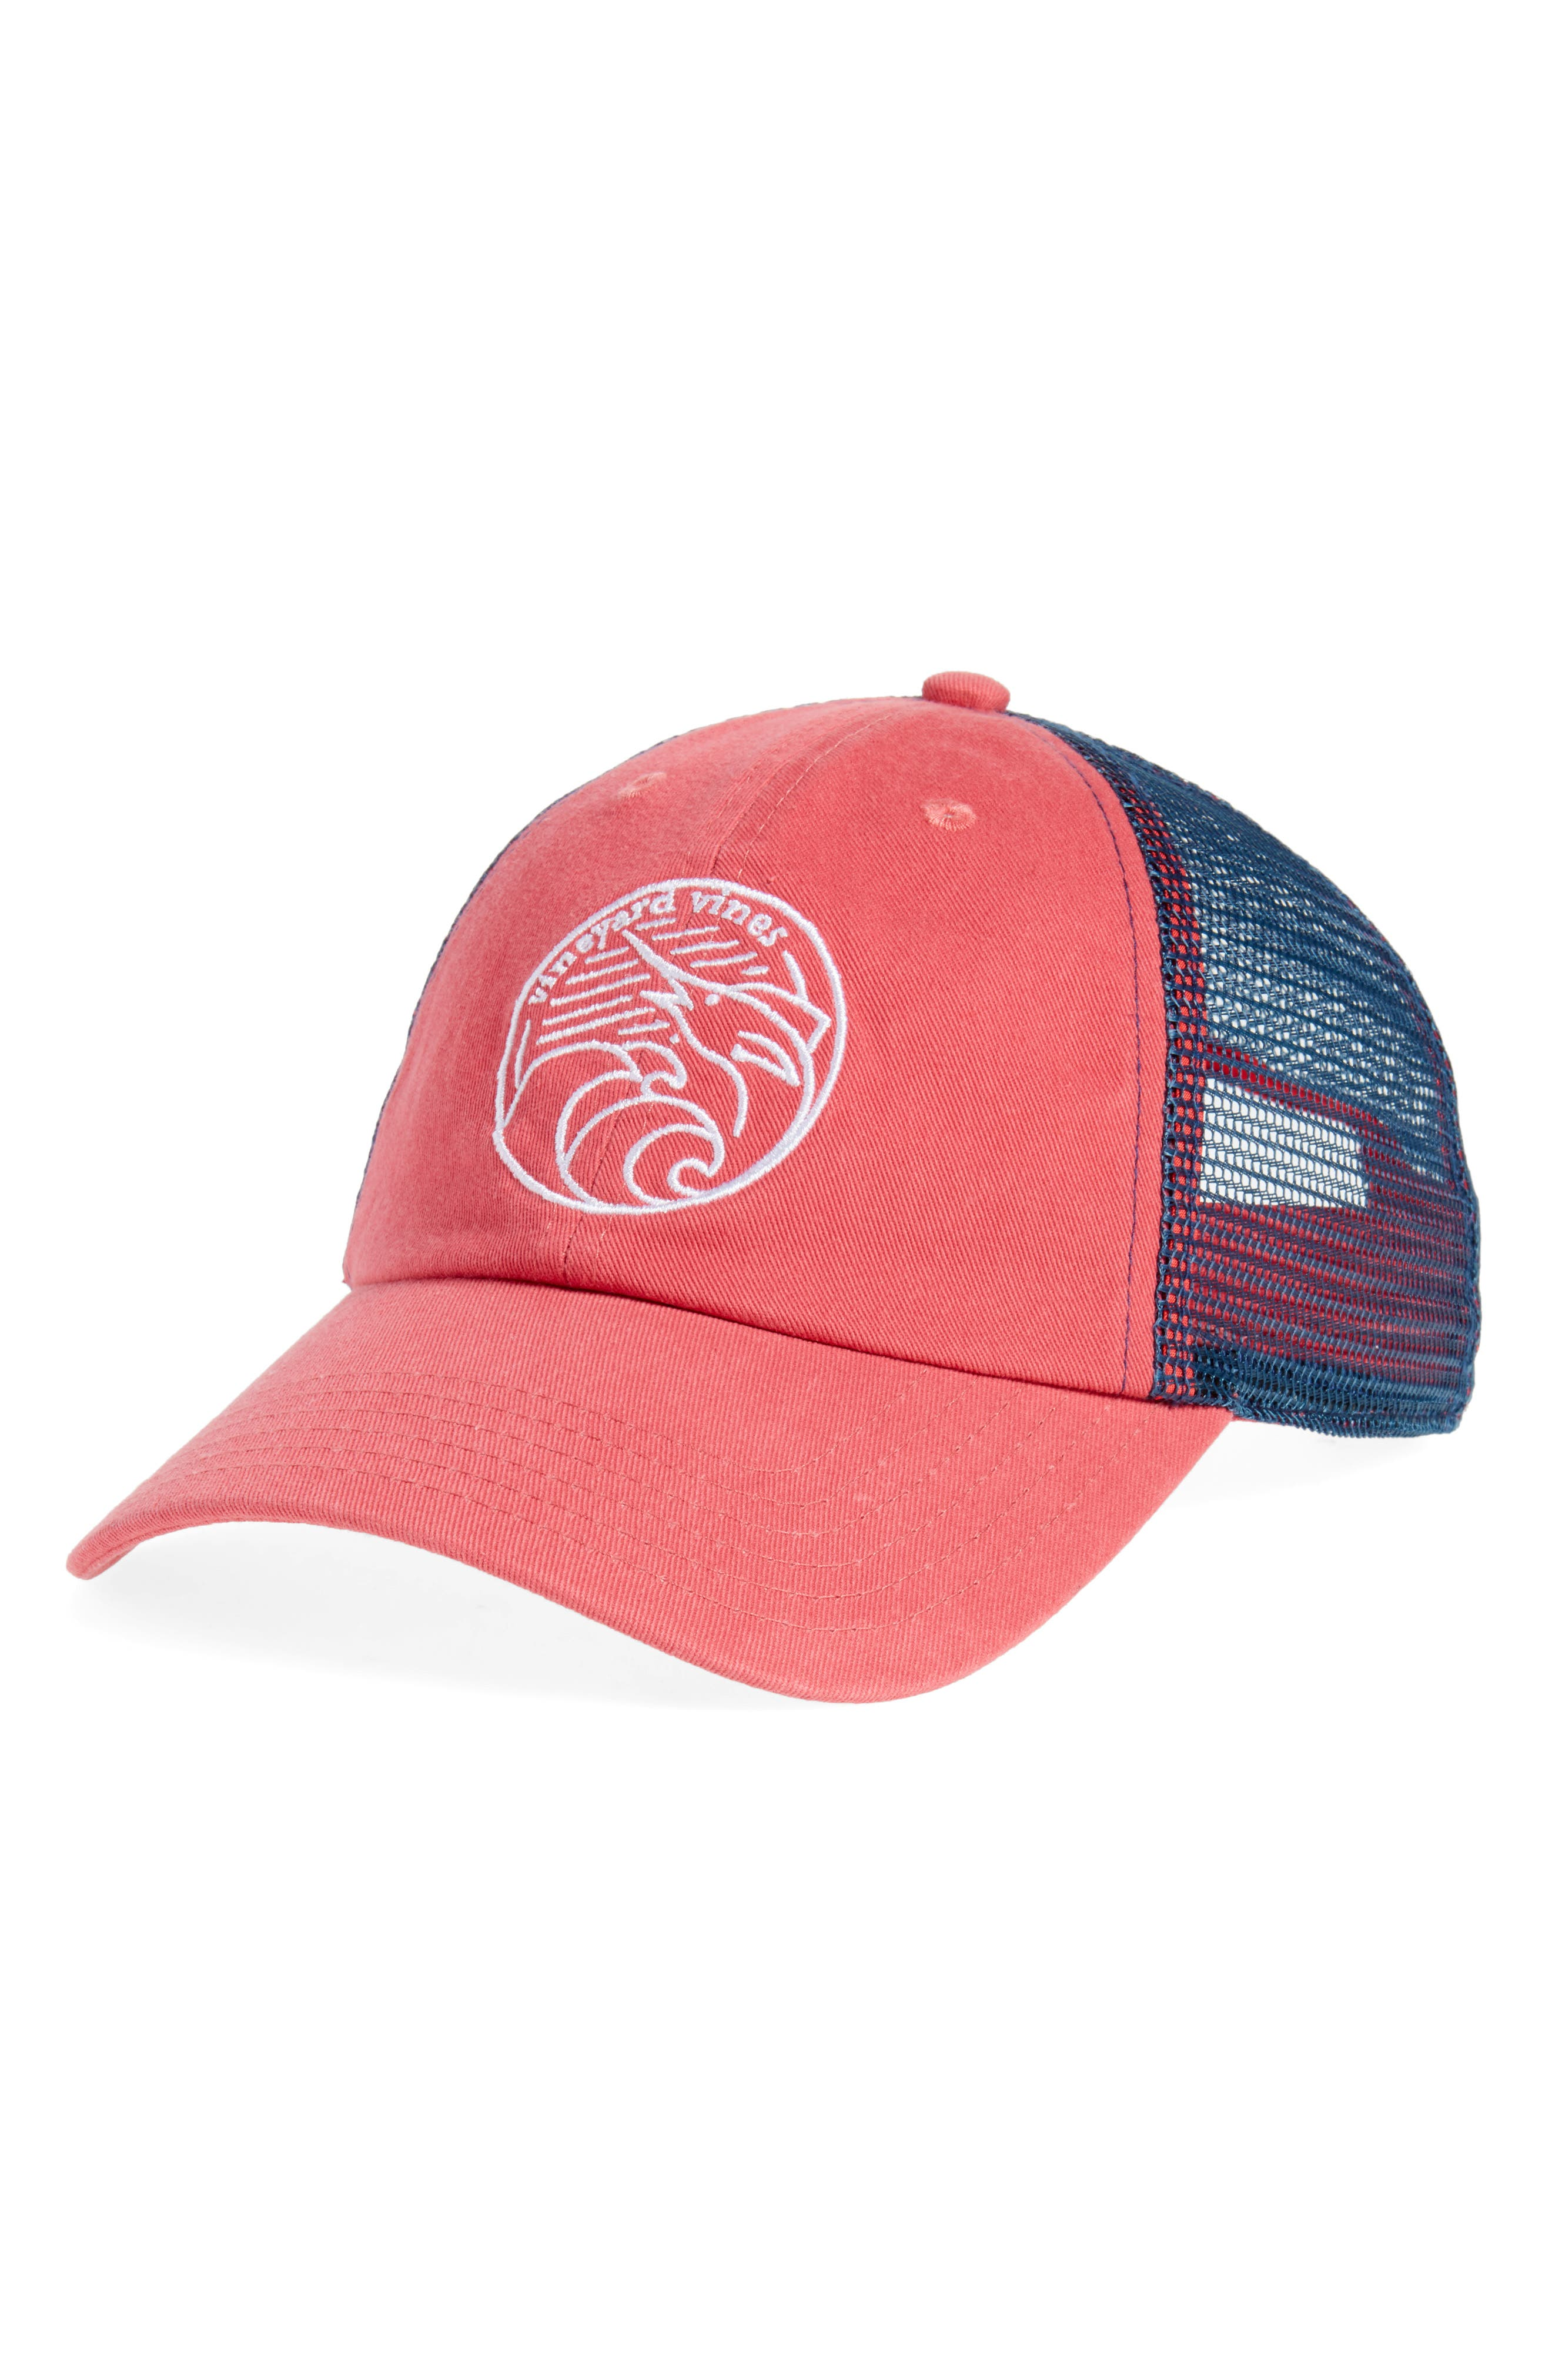 Low Pro Marlin Trucker Cap,                             Main thumbnail 1, color,                             Jetty Red